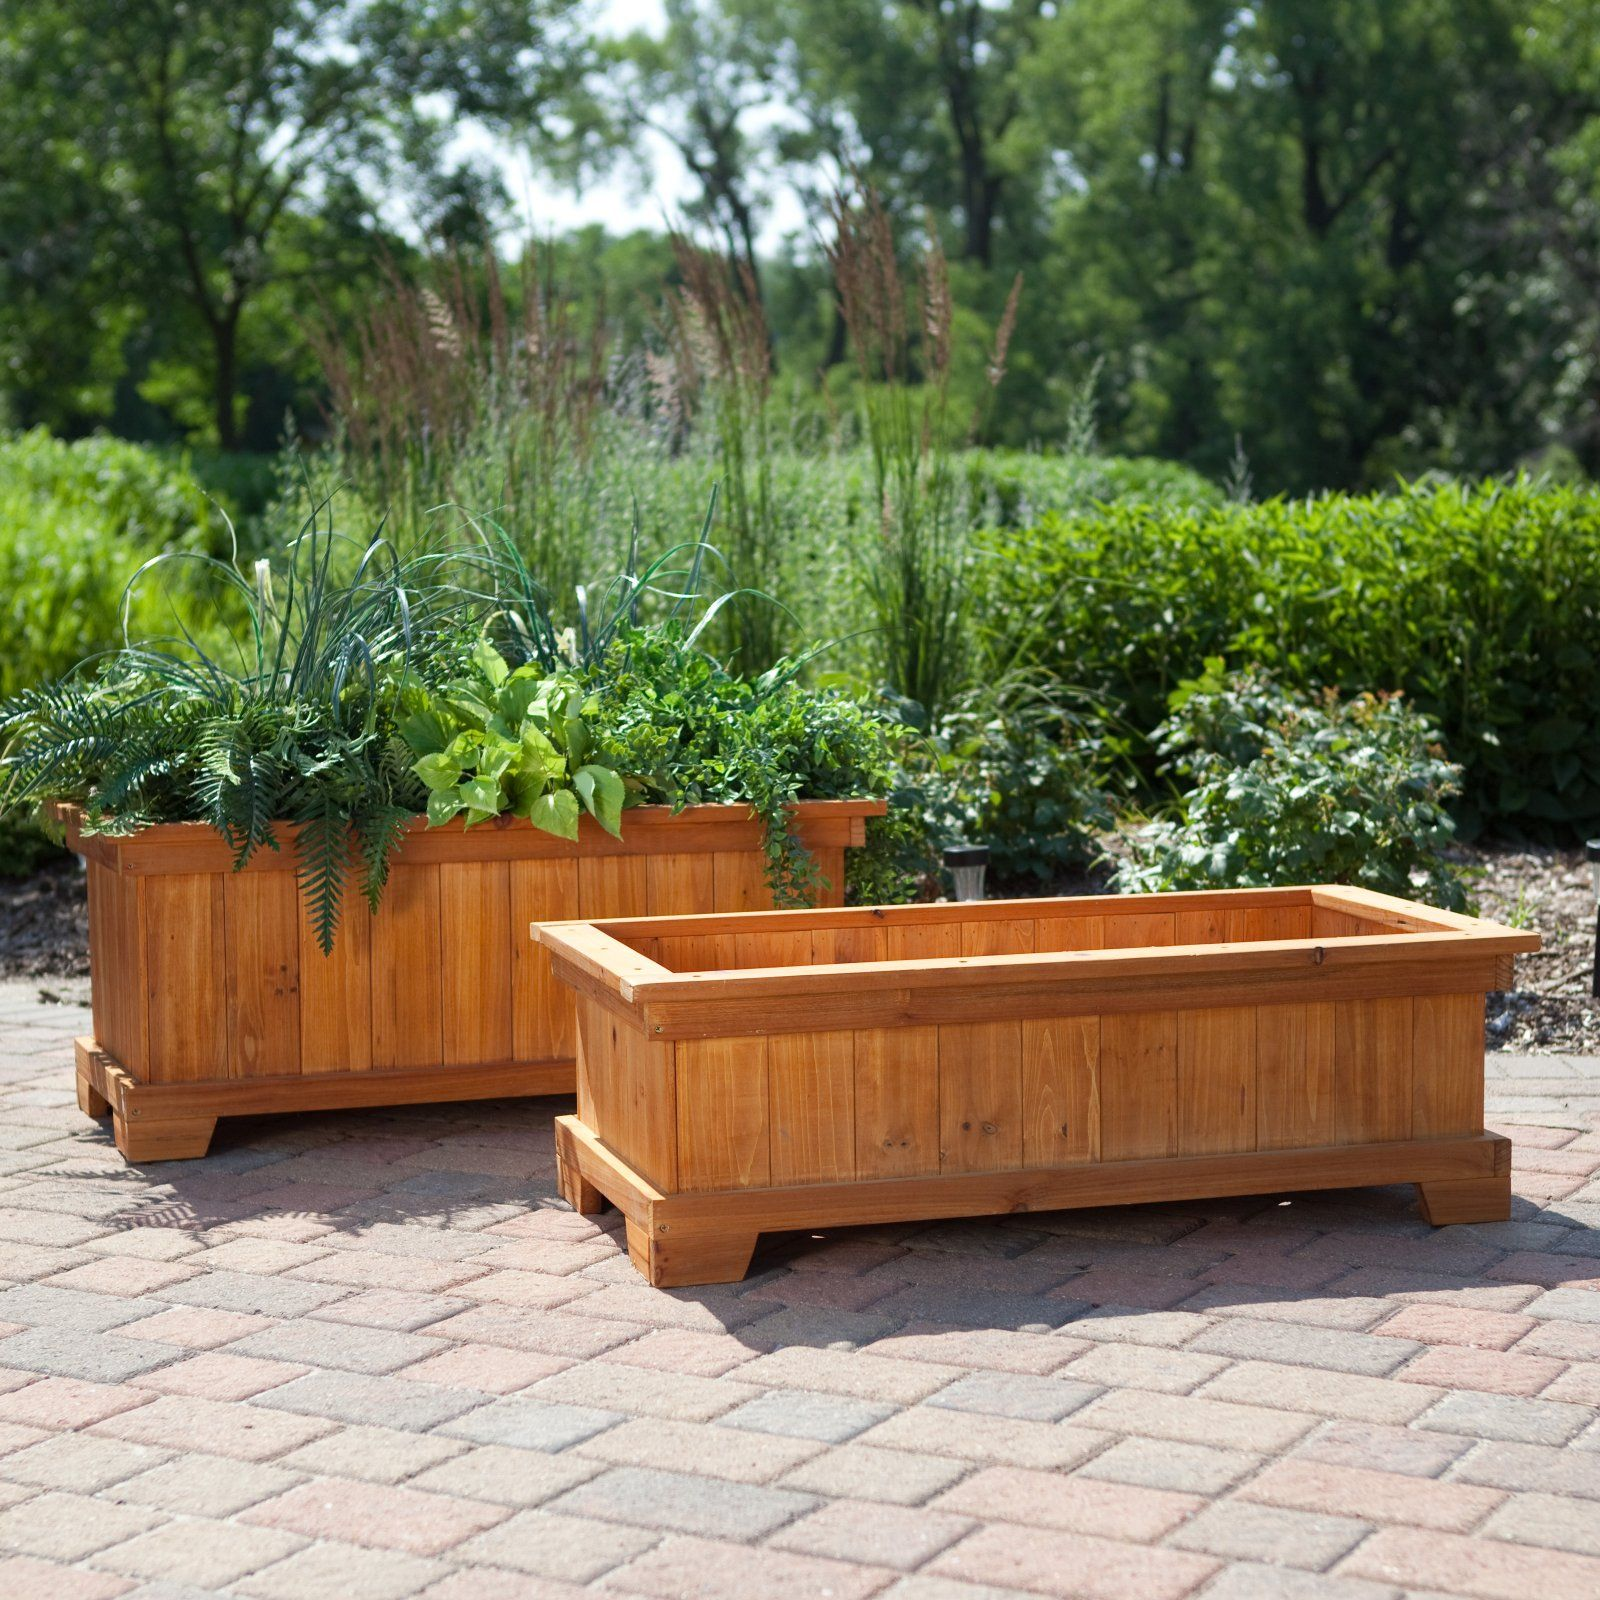 Patio planter box good way to use extra wood flooring